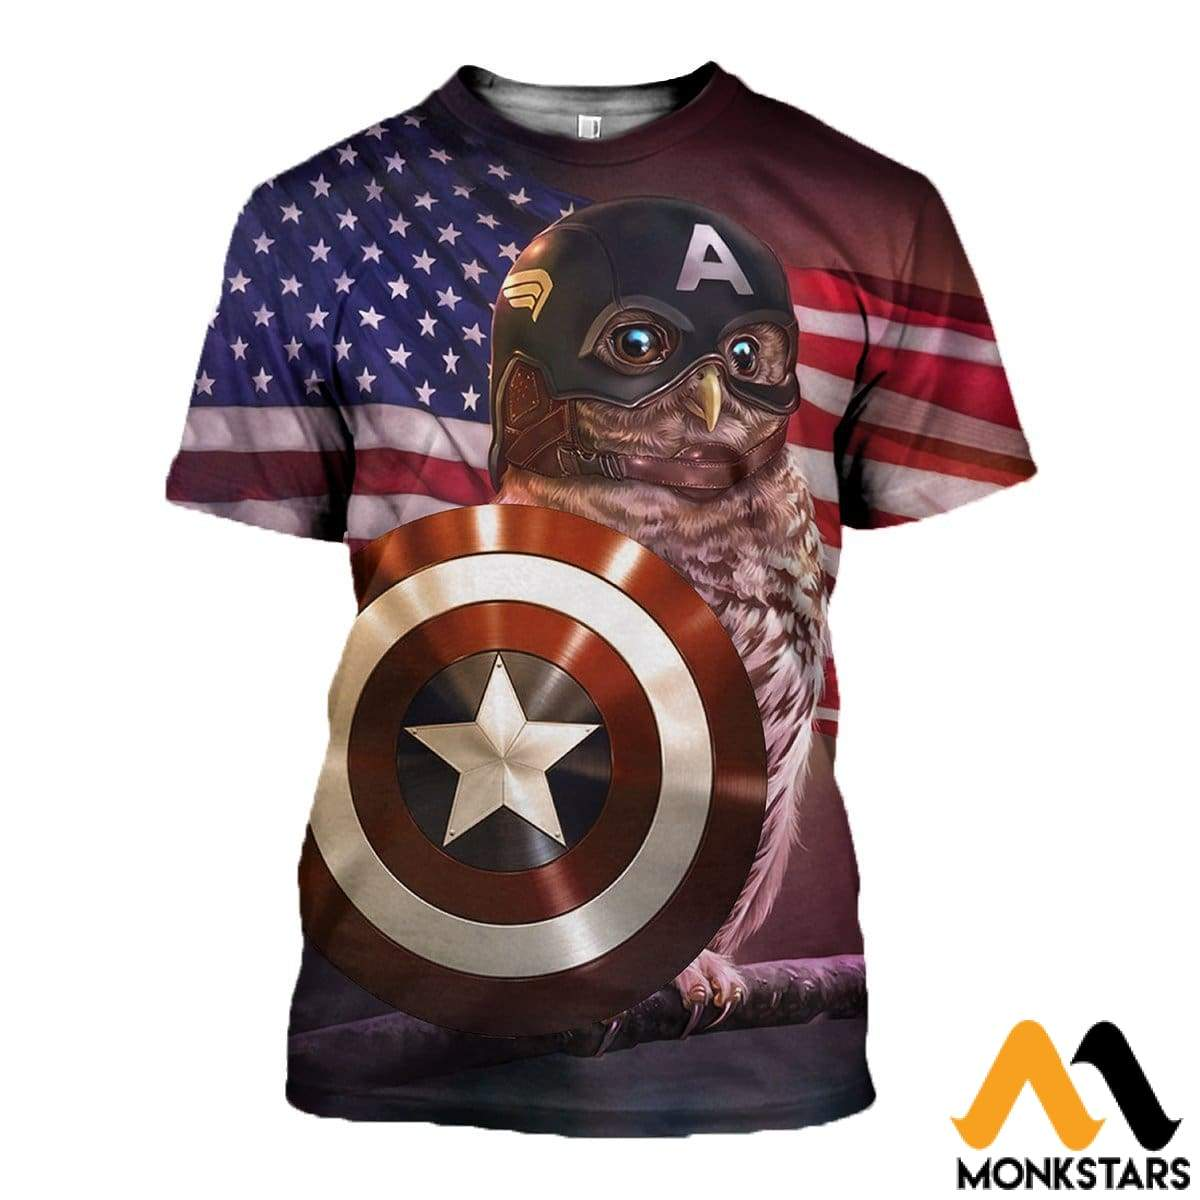 3D All Over Printed Captain T-Shirt Hoodie Saul230405 / Xs Clothes